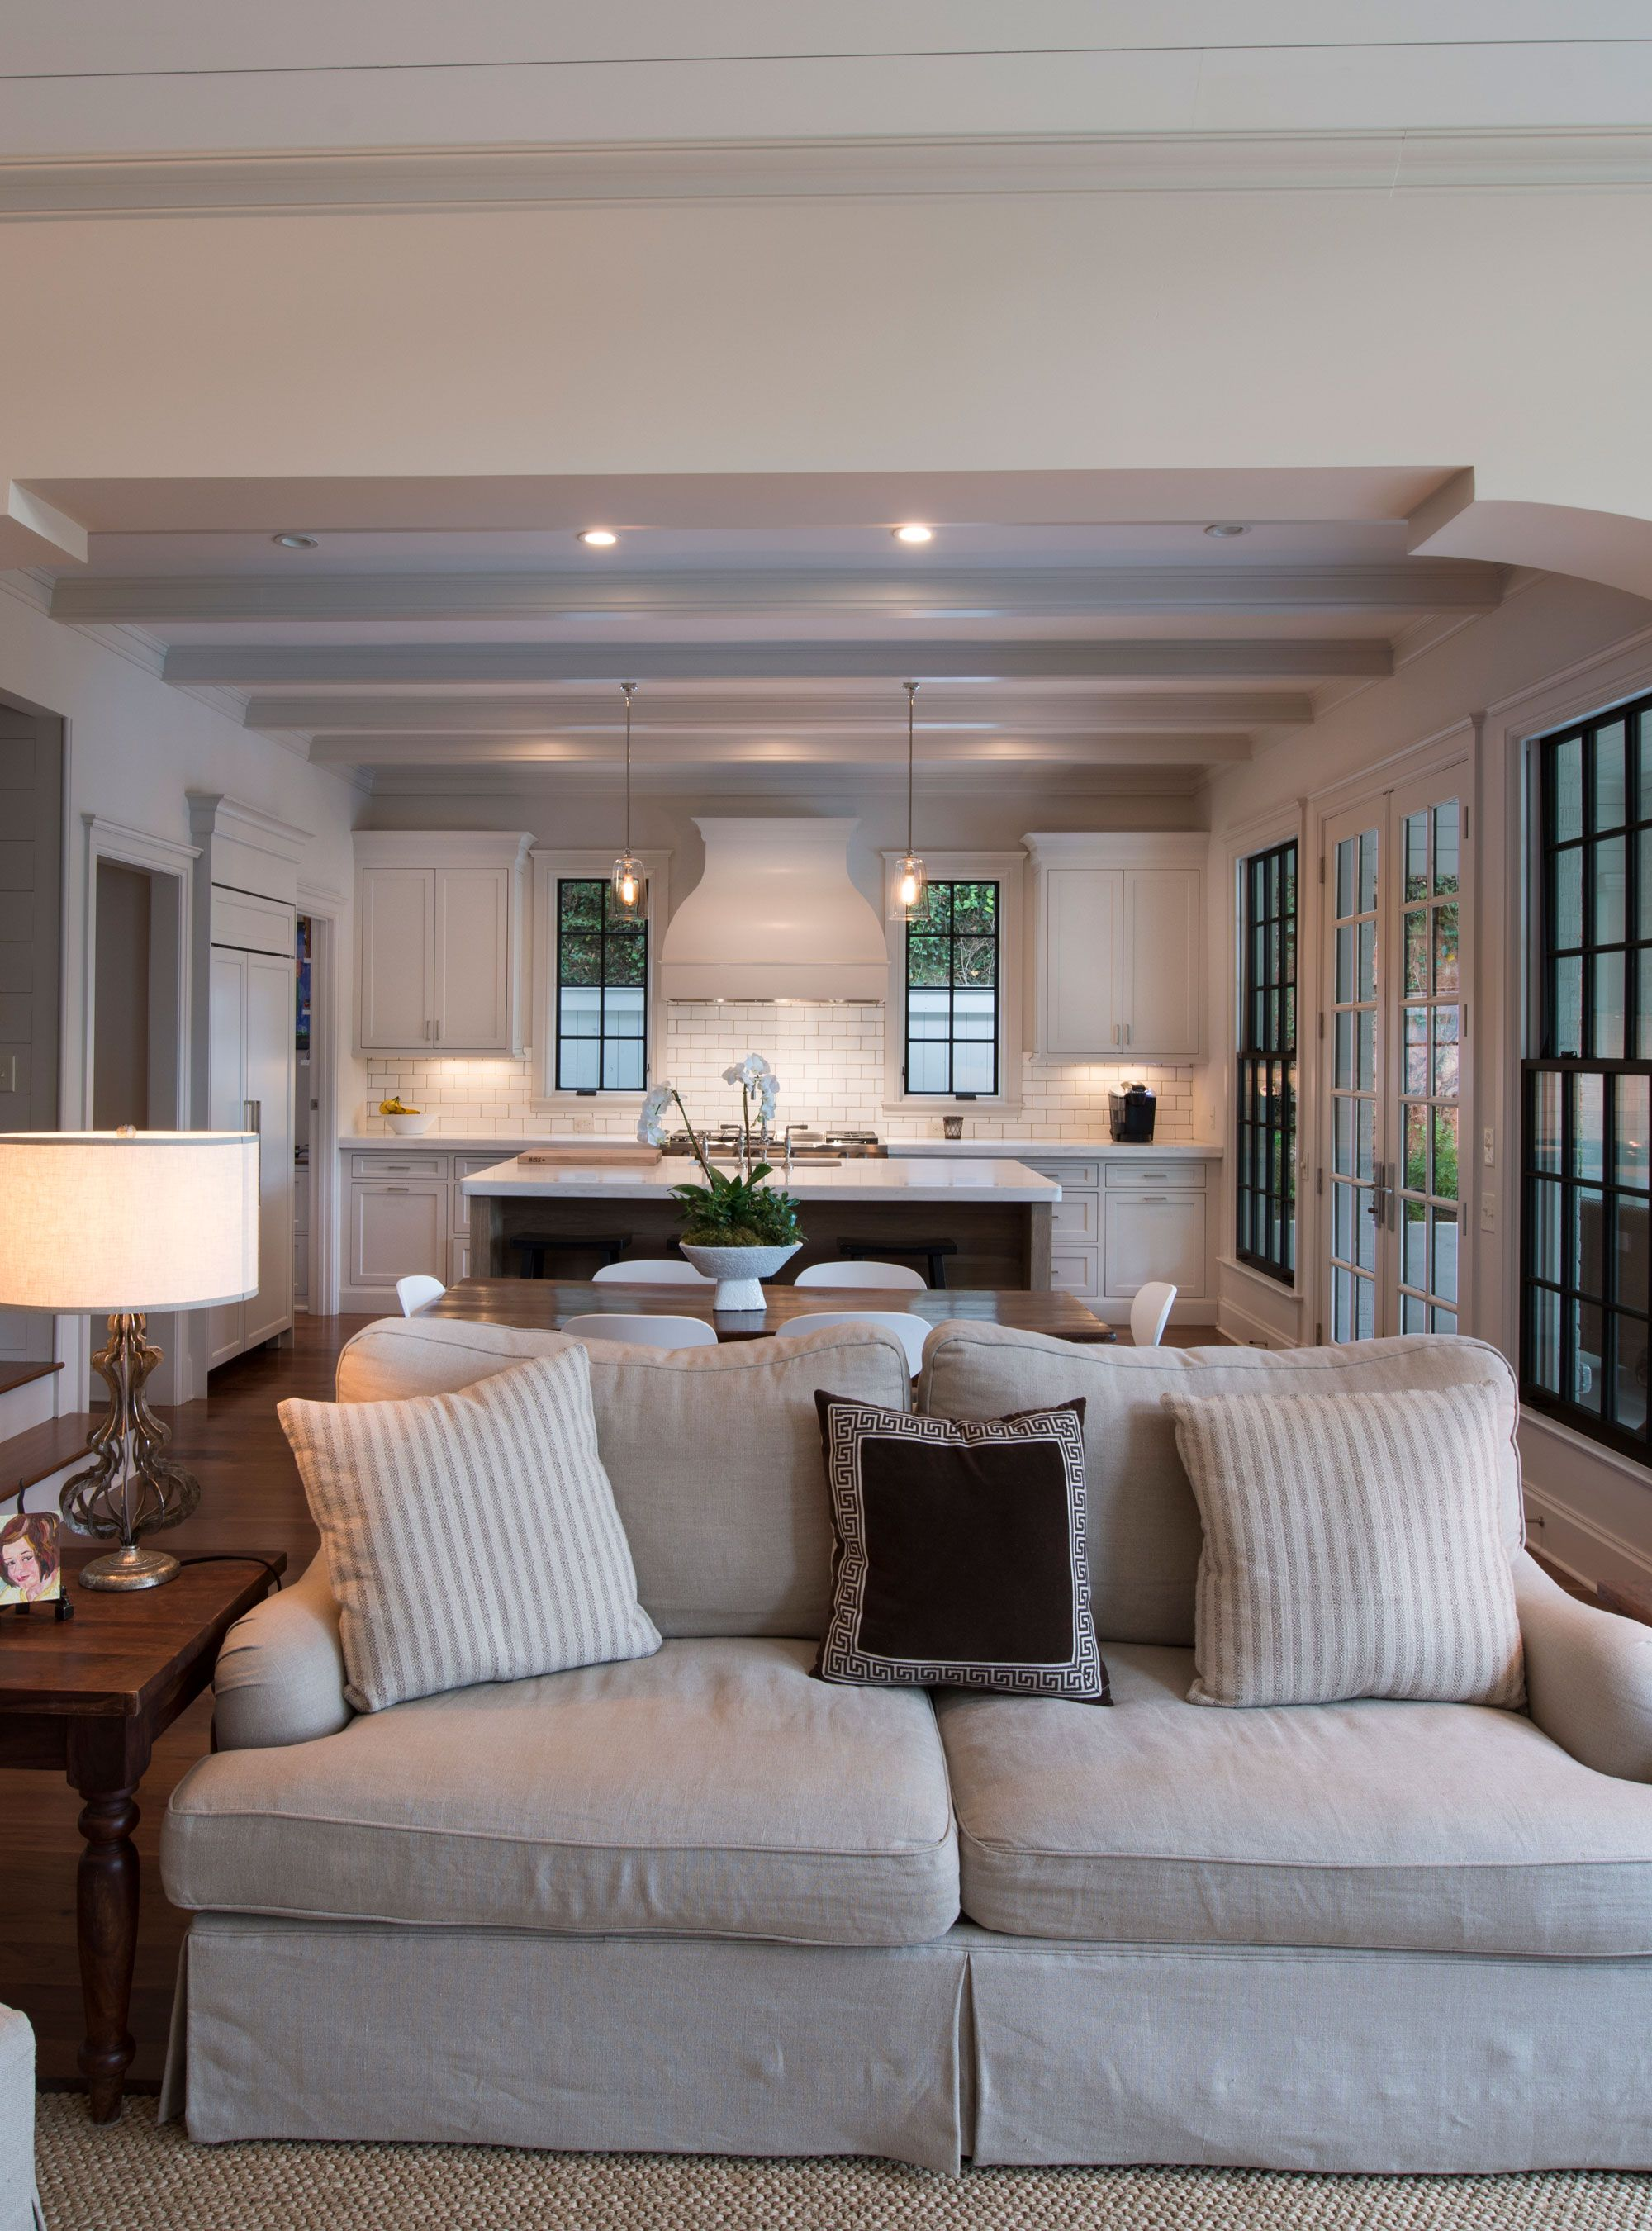 Kitchen Great Room Designs: Open Concept Living Room Overlooking The Kitchen With